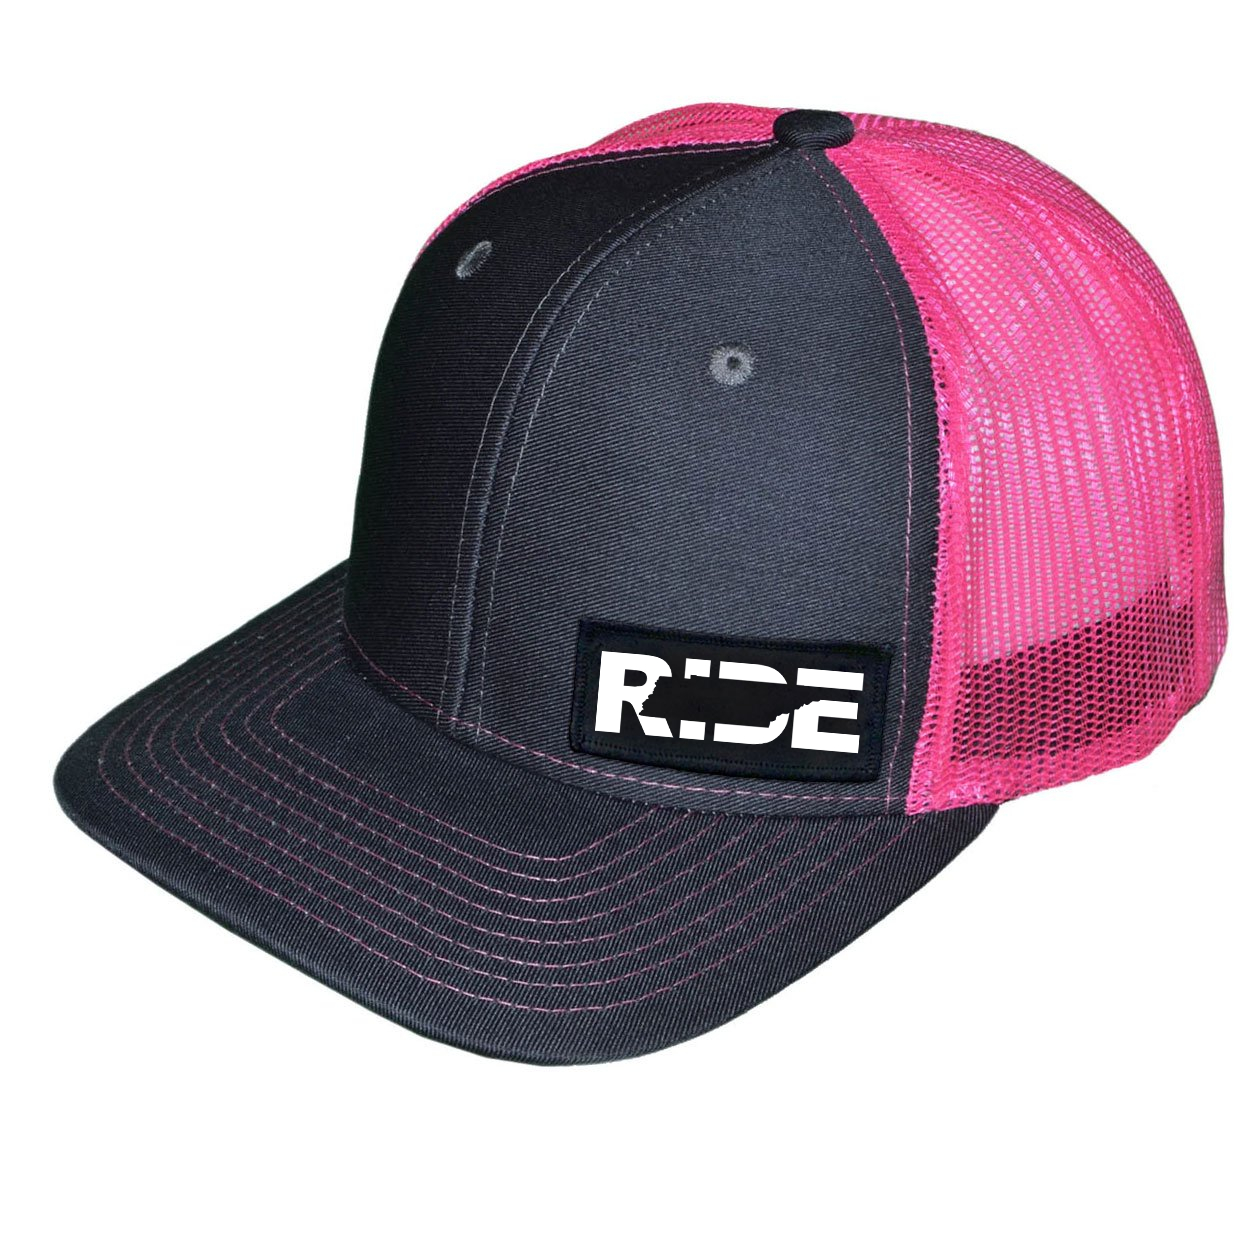 Ride Tennessee Night Out Woven Patch Snapback Trucker Hat Dark Gray/Neon Pink (White Logo)